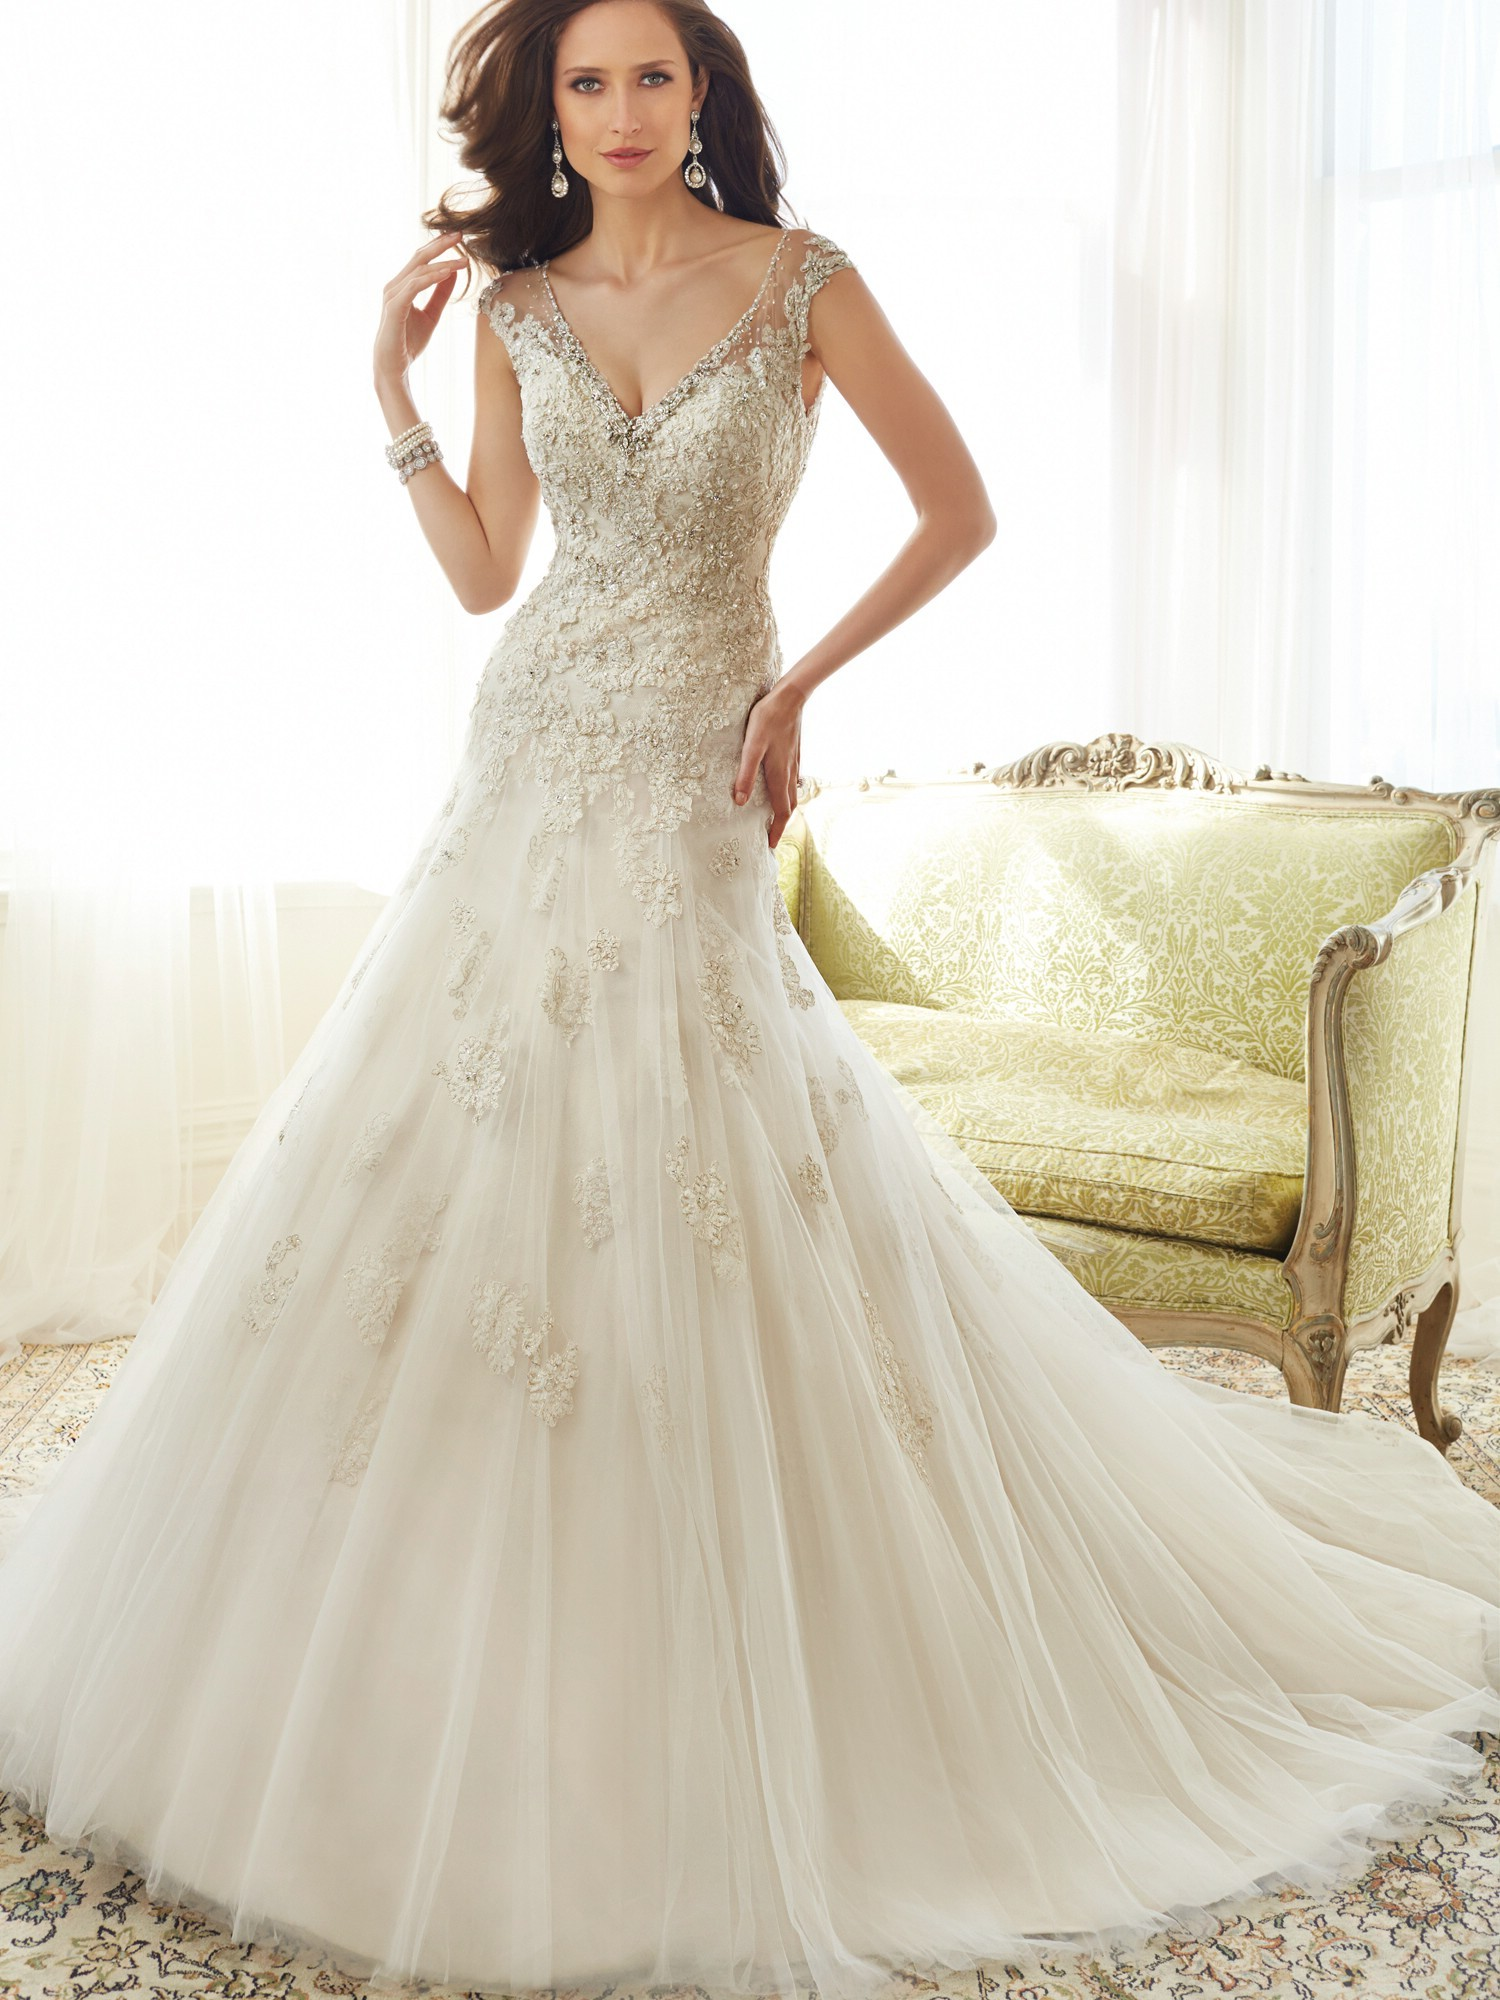 Sophia Tolli was £1,650 - now £380